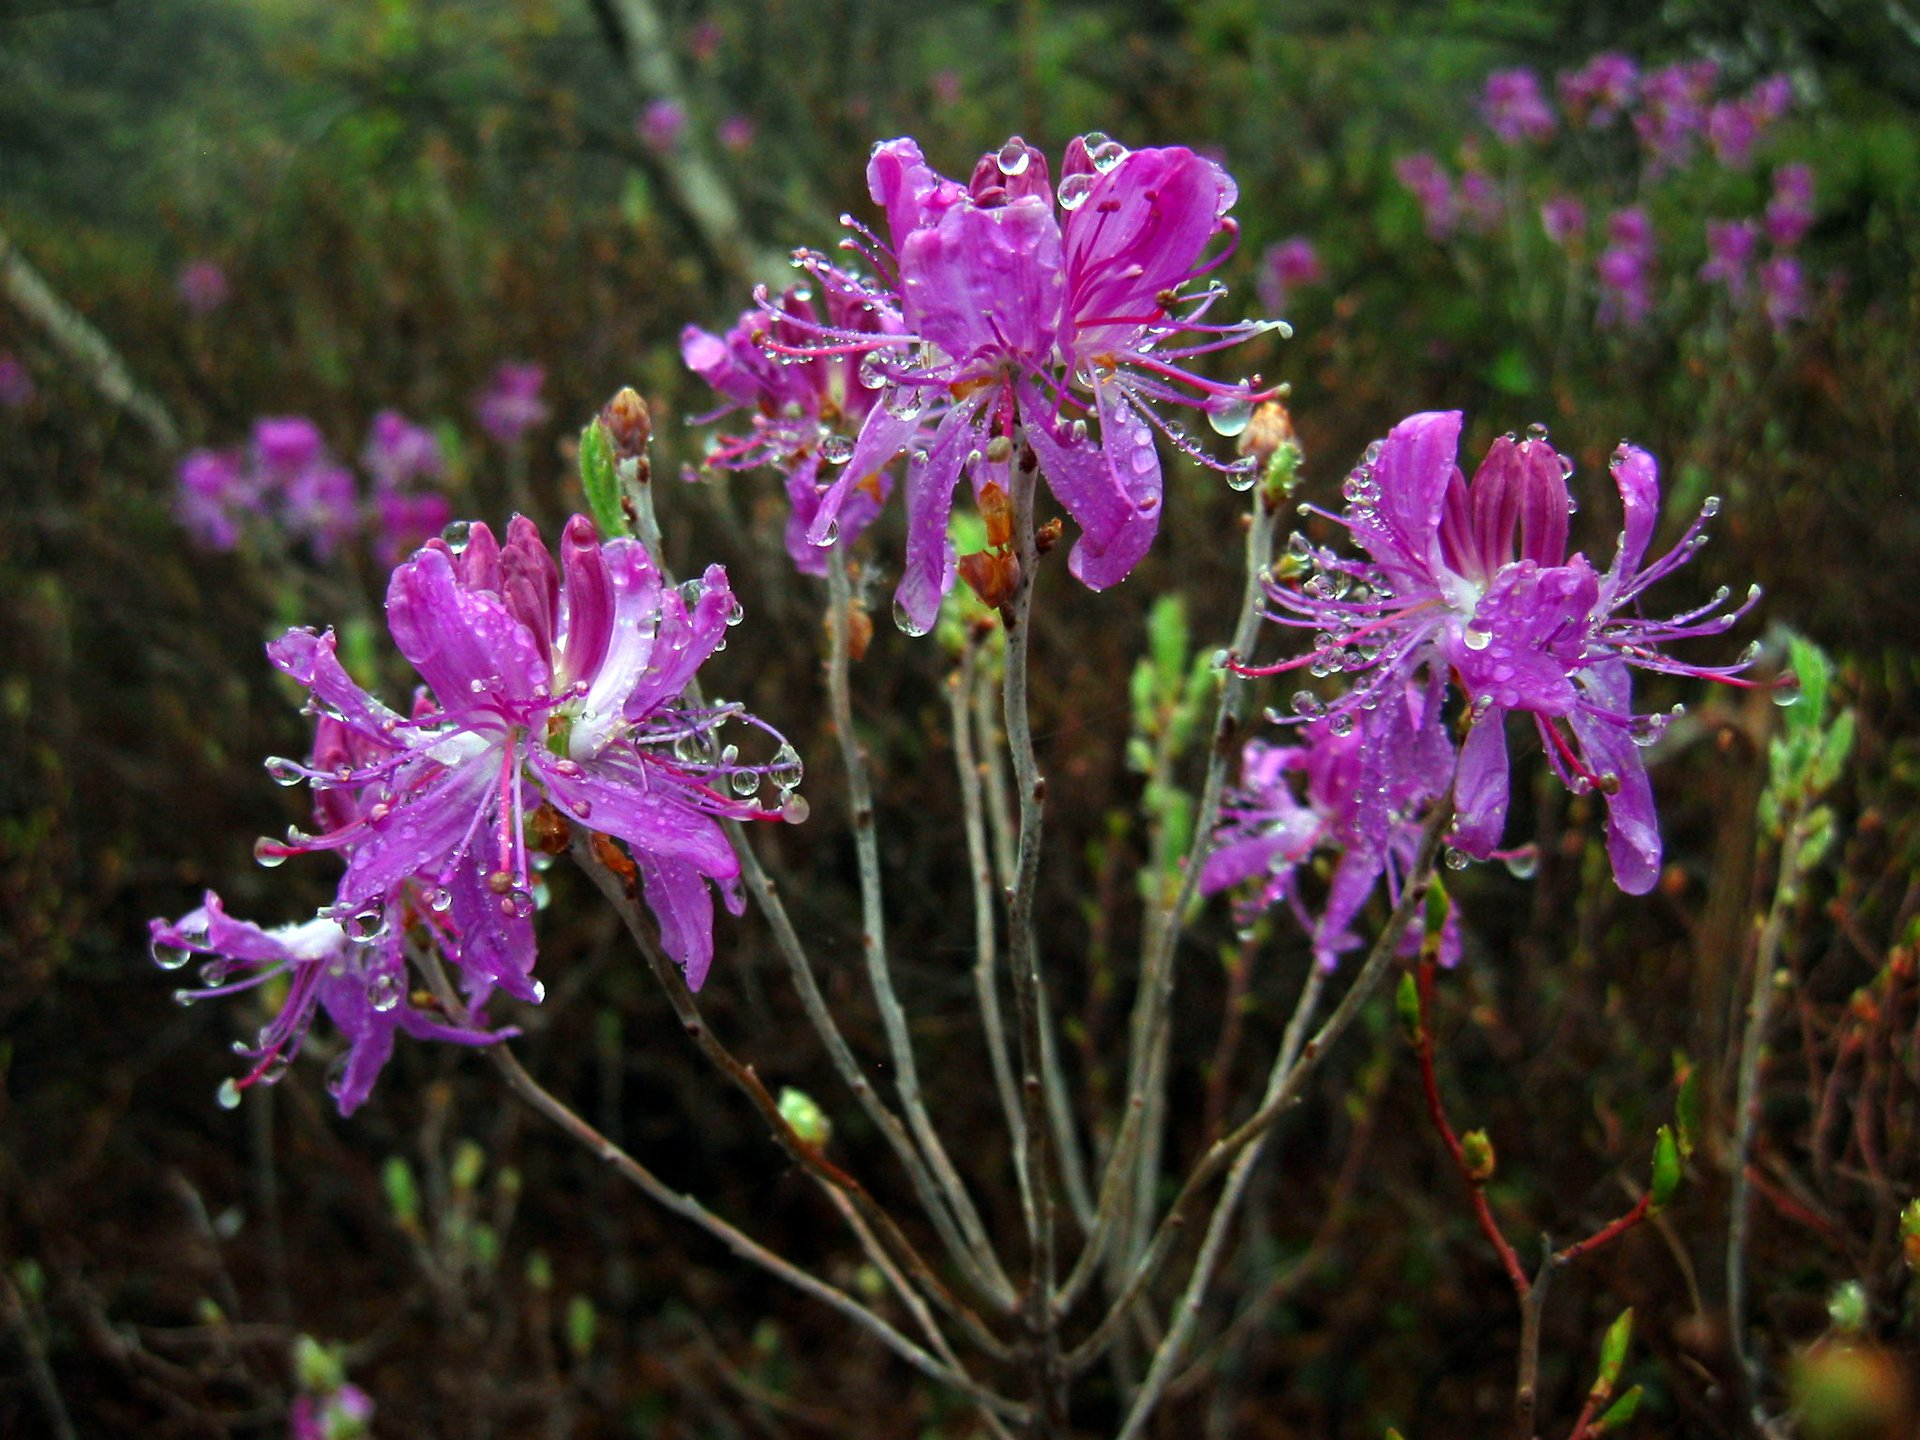 Rhodora (Rhododendron canadense) - this spectacular plant is rare in NY (state-threatened).